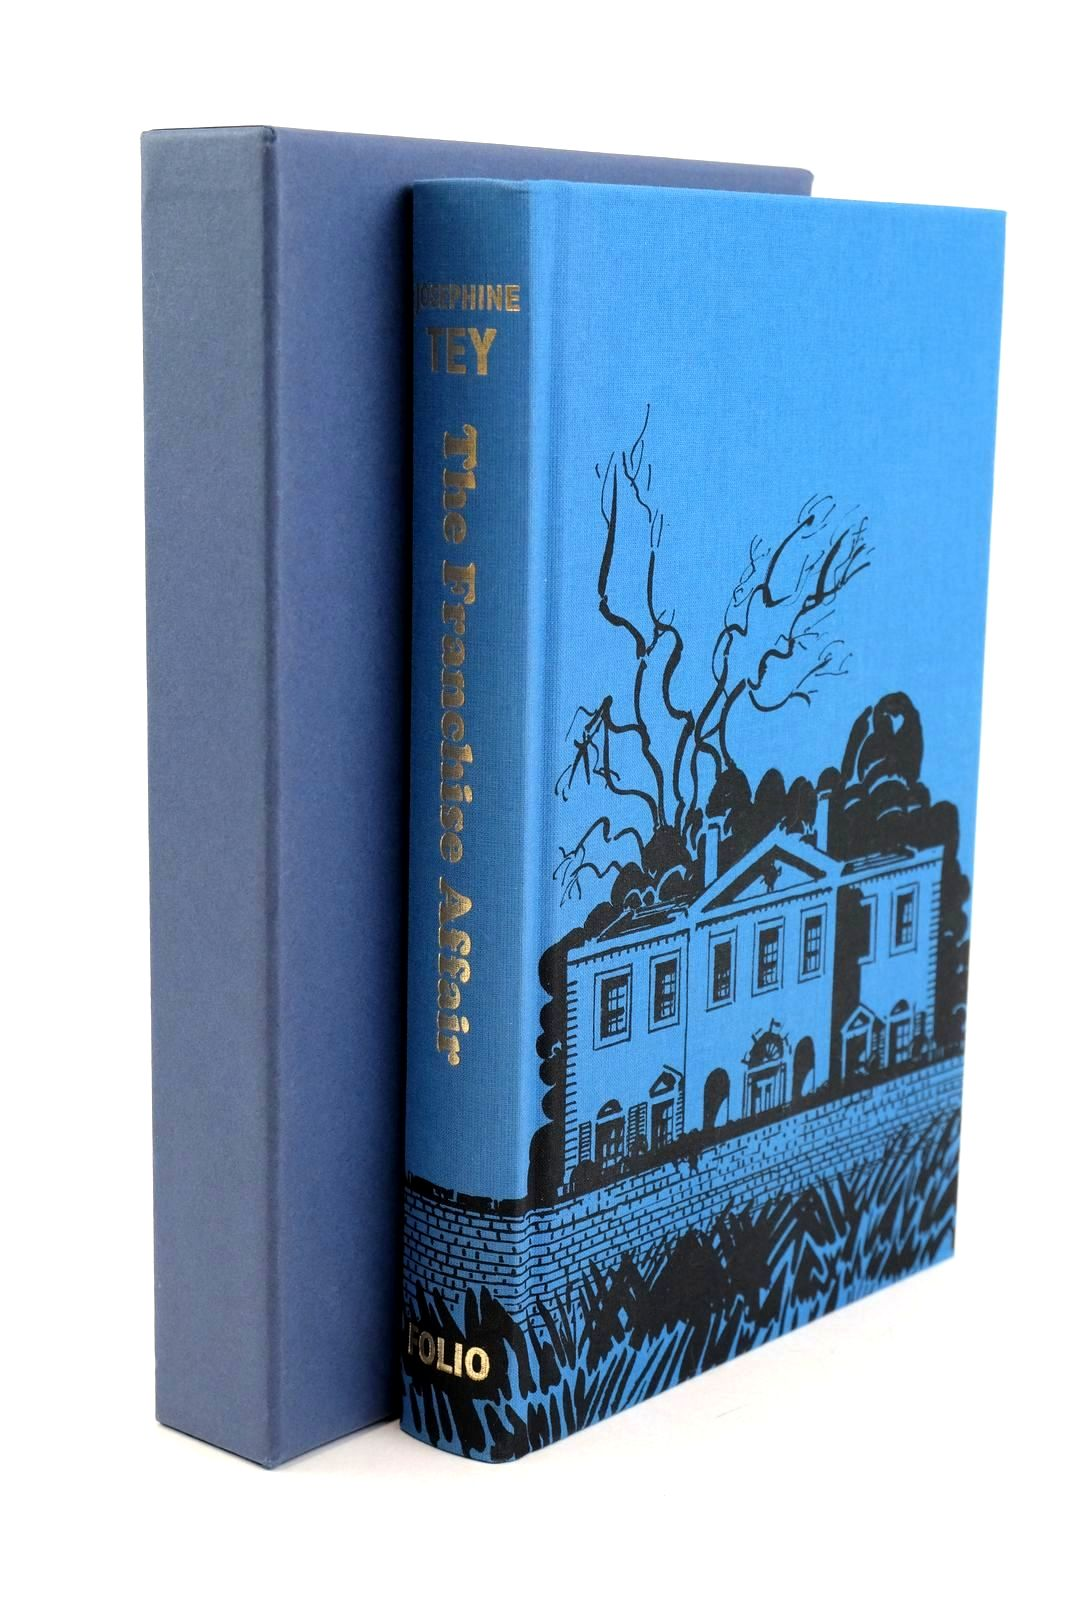 Photo of THE FRANCHISE AFFAIR written by Tey, Josephine Fraser, Antonia illustrated by Hogarth, Paul published by Folio Society (STOCK CODE: 1318916)  for sale by Stella & Rose's Books